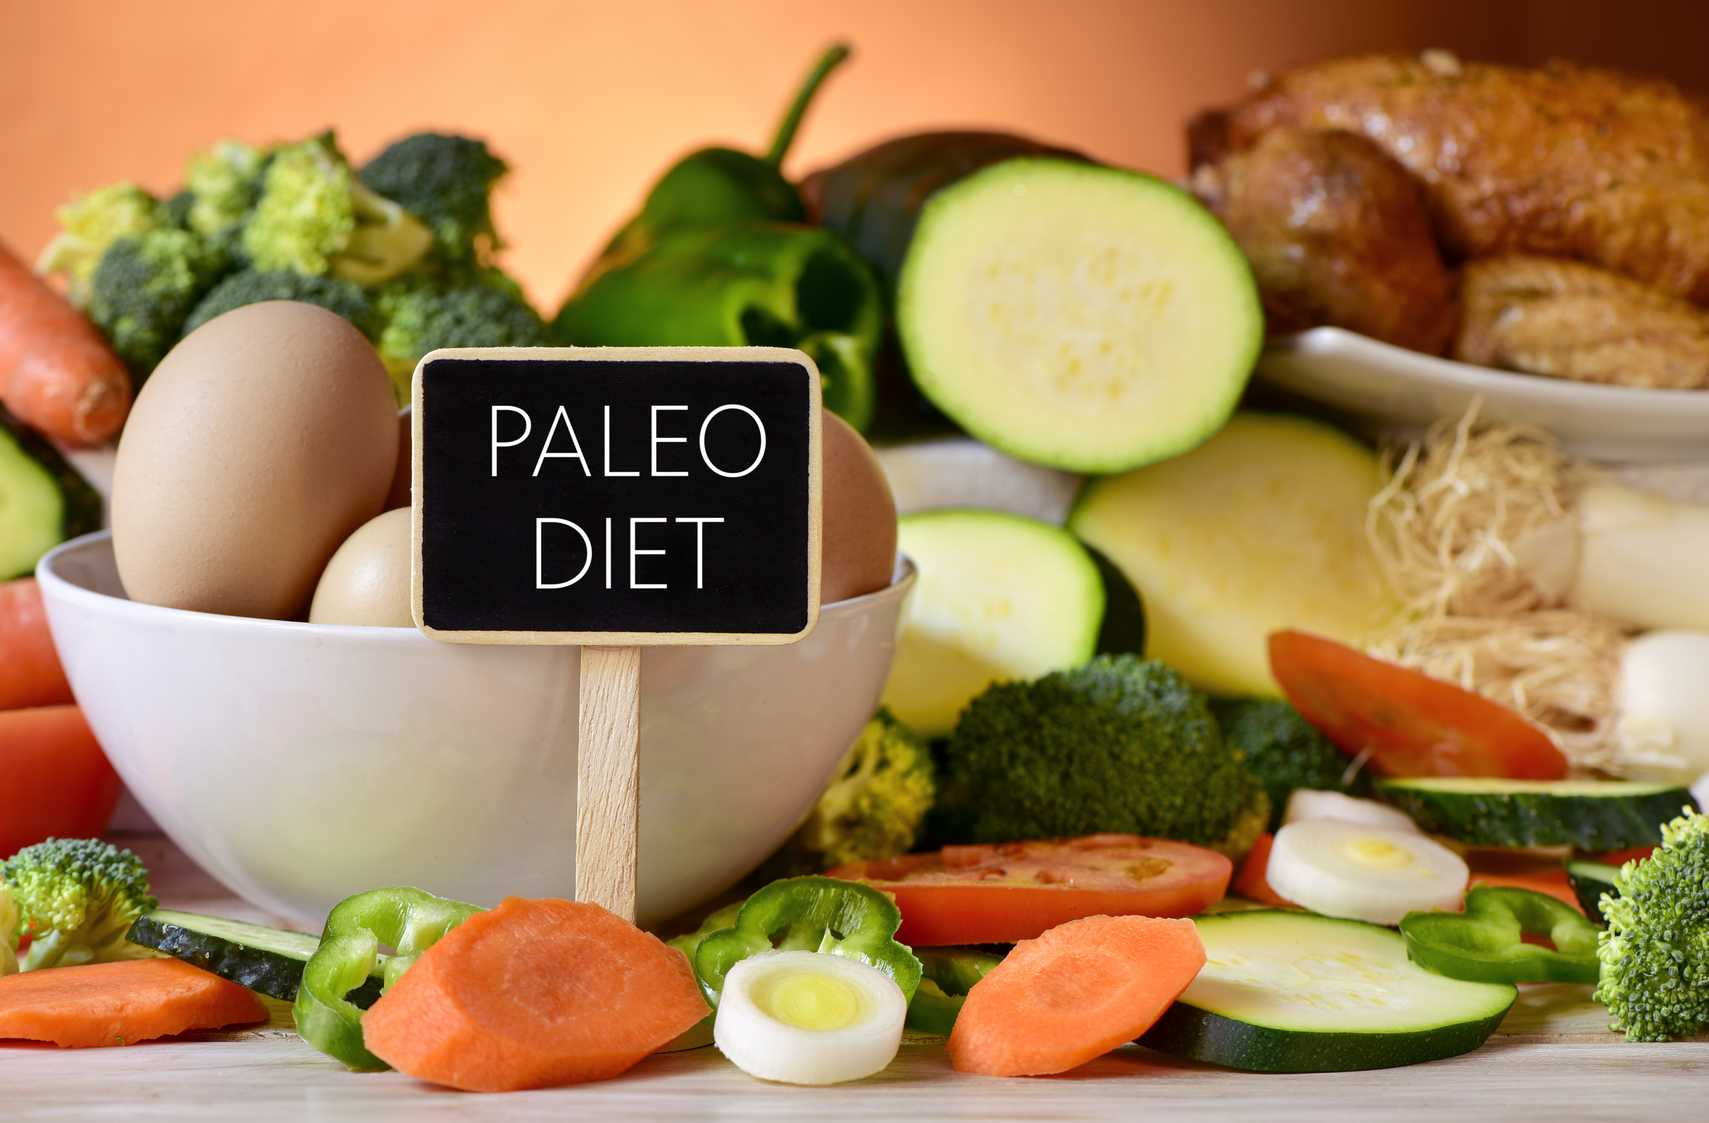 How to follow a healthy paleo diet